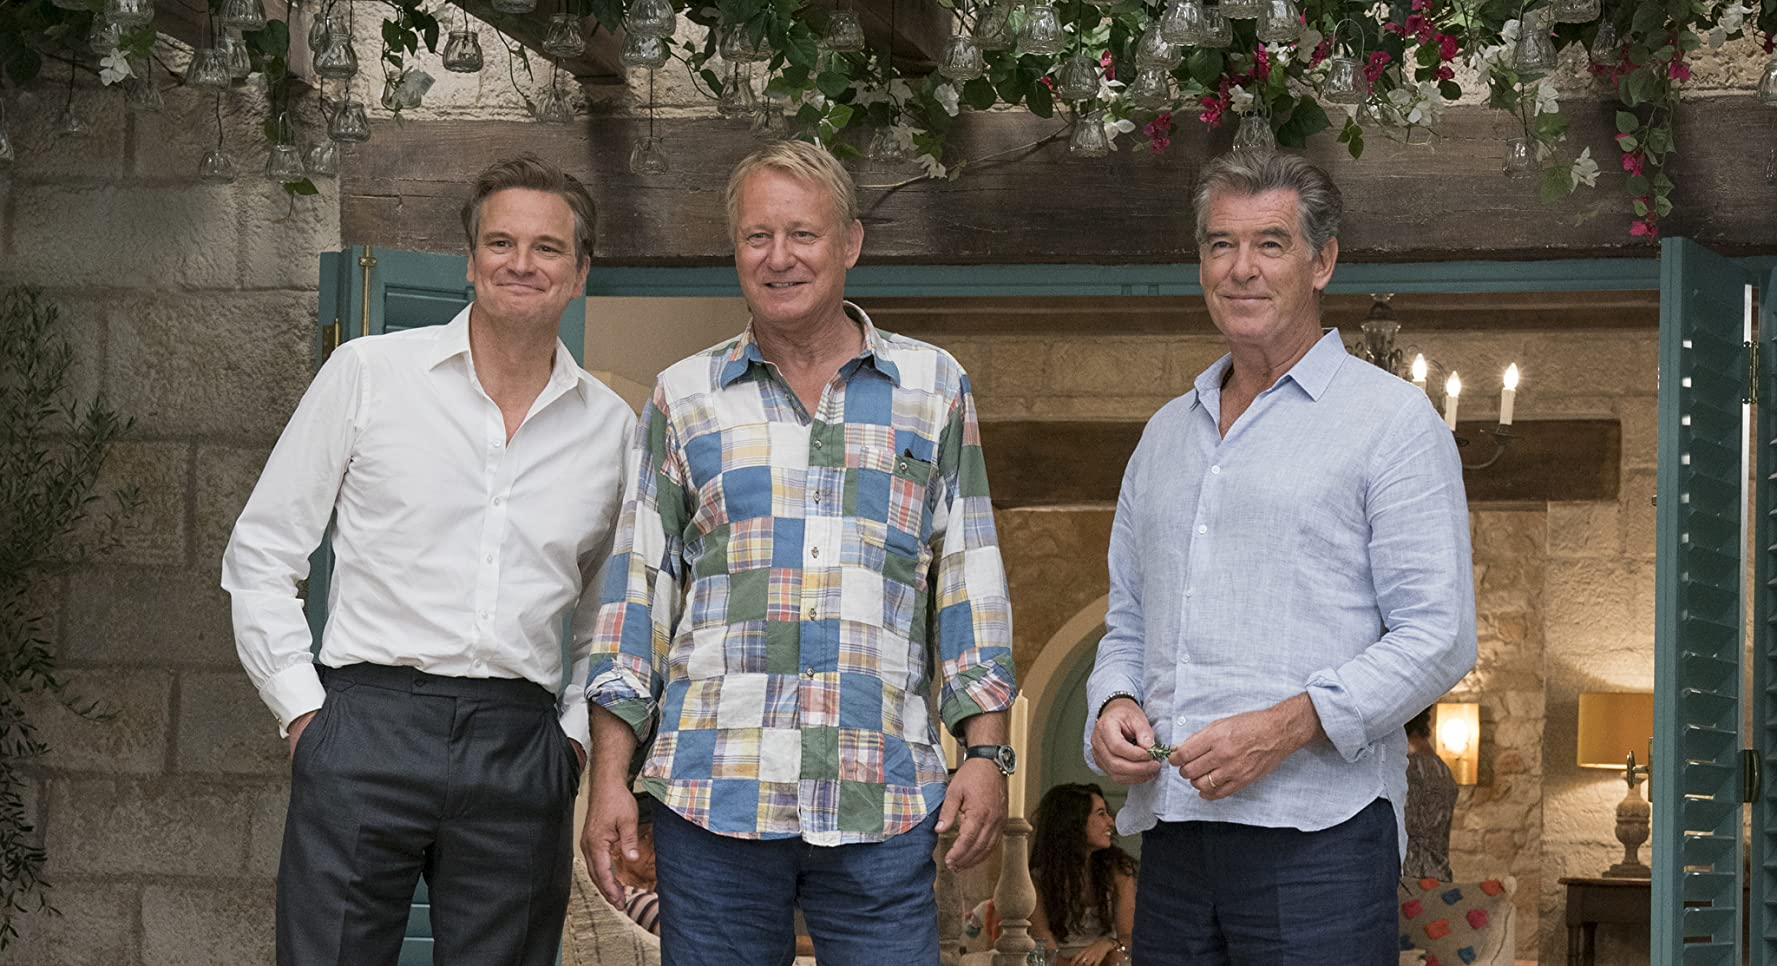 Pierce Brosnan, Colin Firth, and Stellan Skarsgård in Mamma Mia! Here We Go Again (2018)